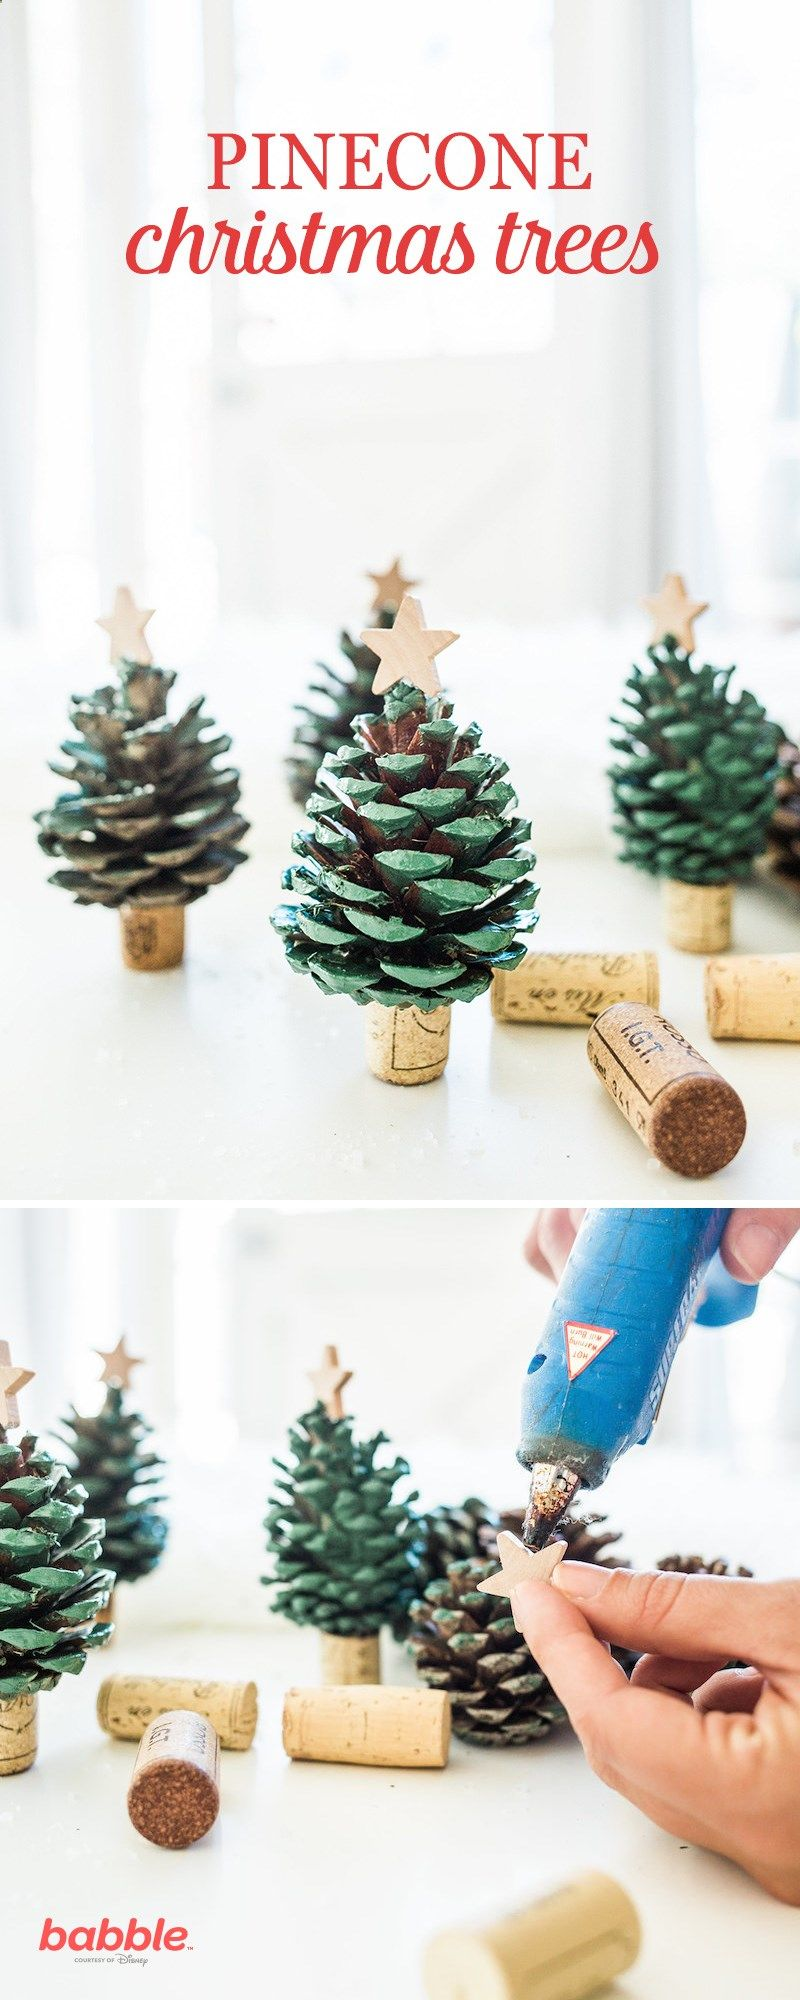 Spread some holiday cheer and decorate your